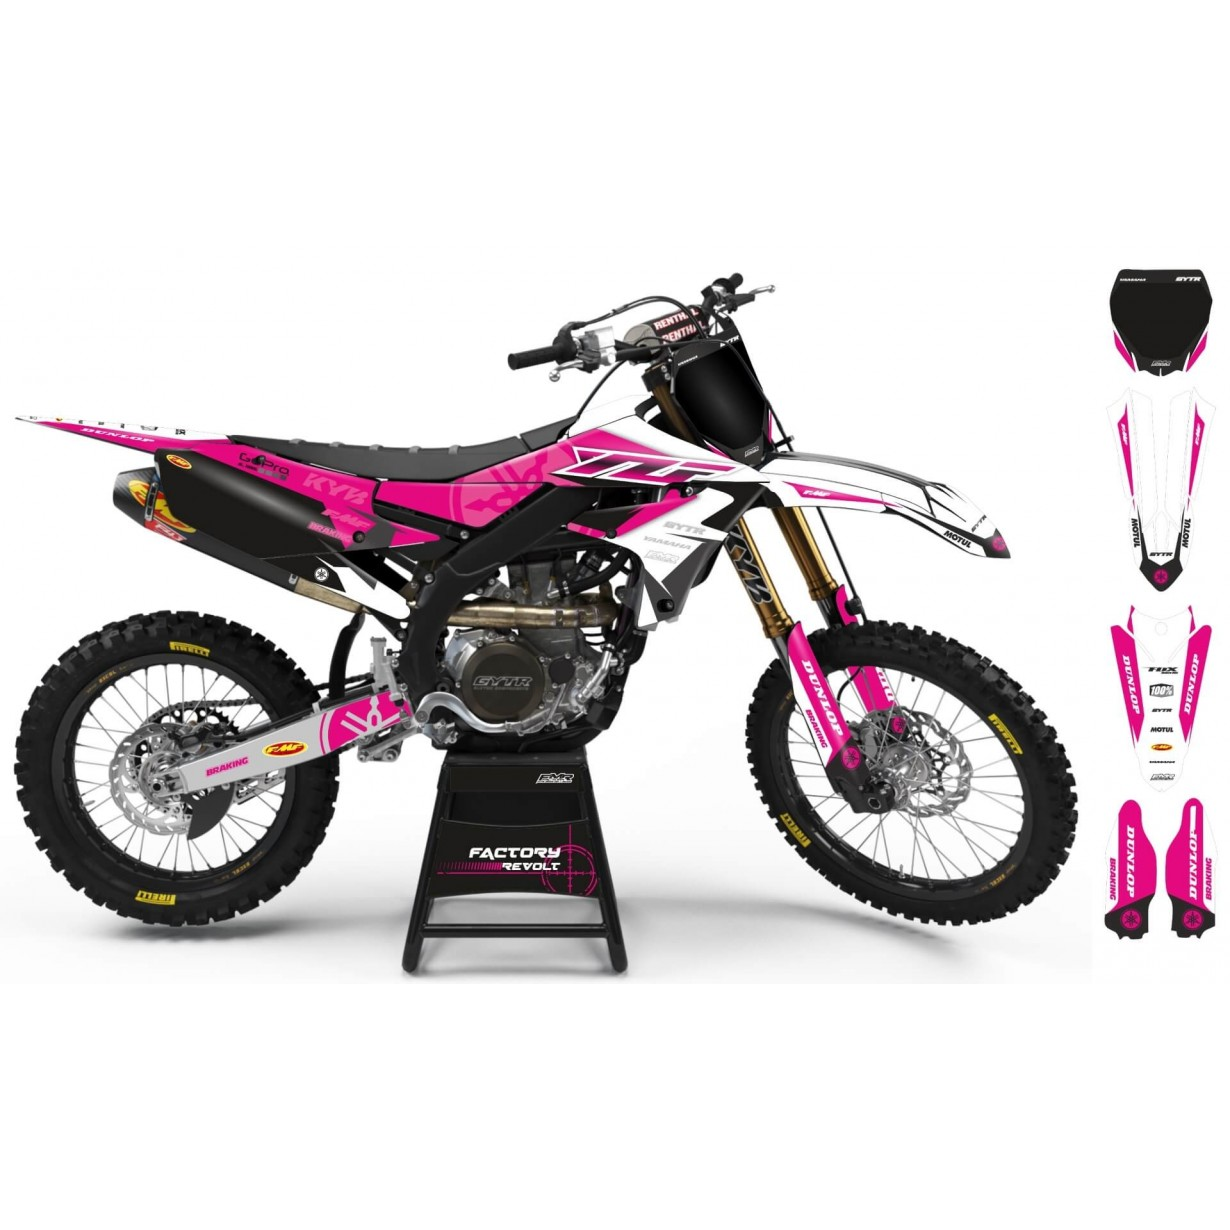 Kit déco Perso YAMAHA Factory Revolt A26E2 white/pink